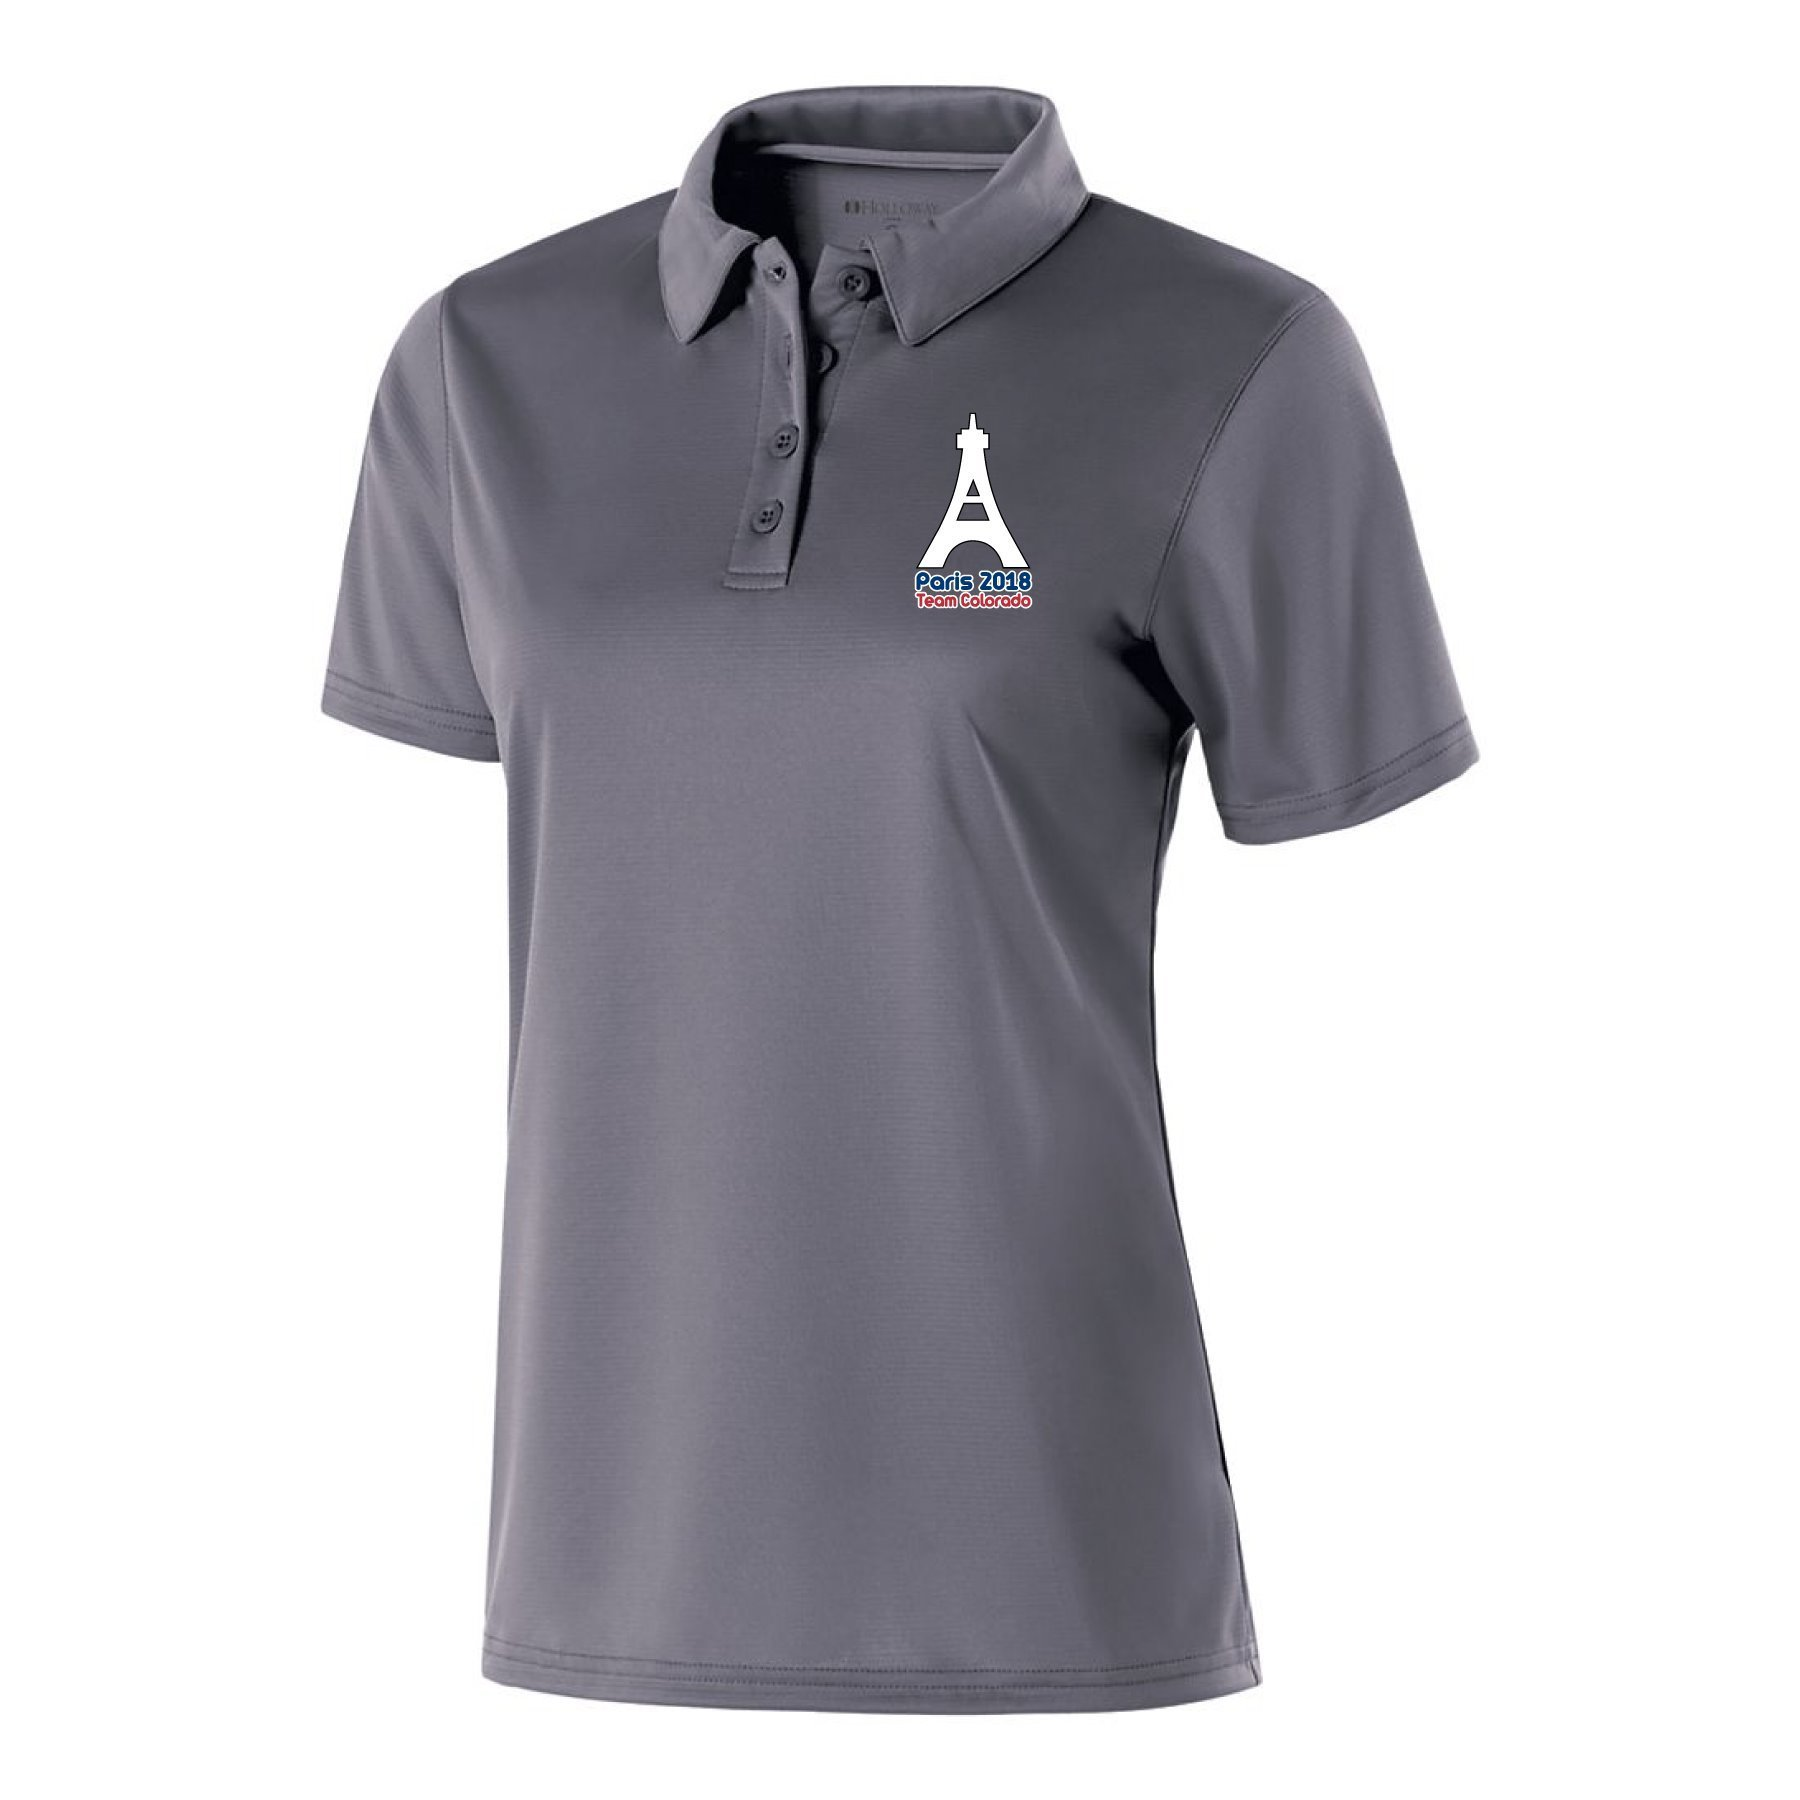 Team CO Paris 2018 Polo - Women's, Pre-Order 00003